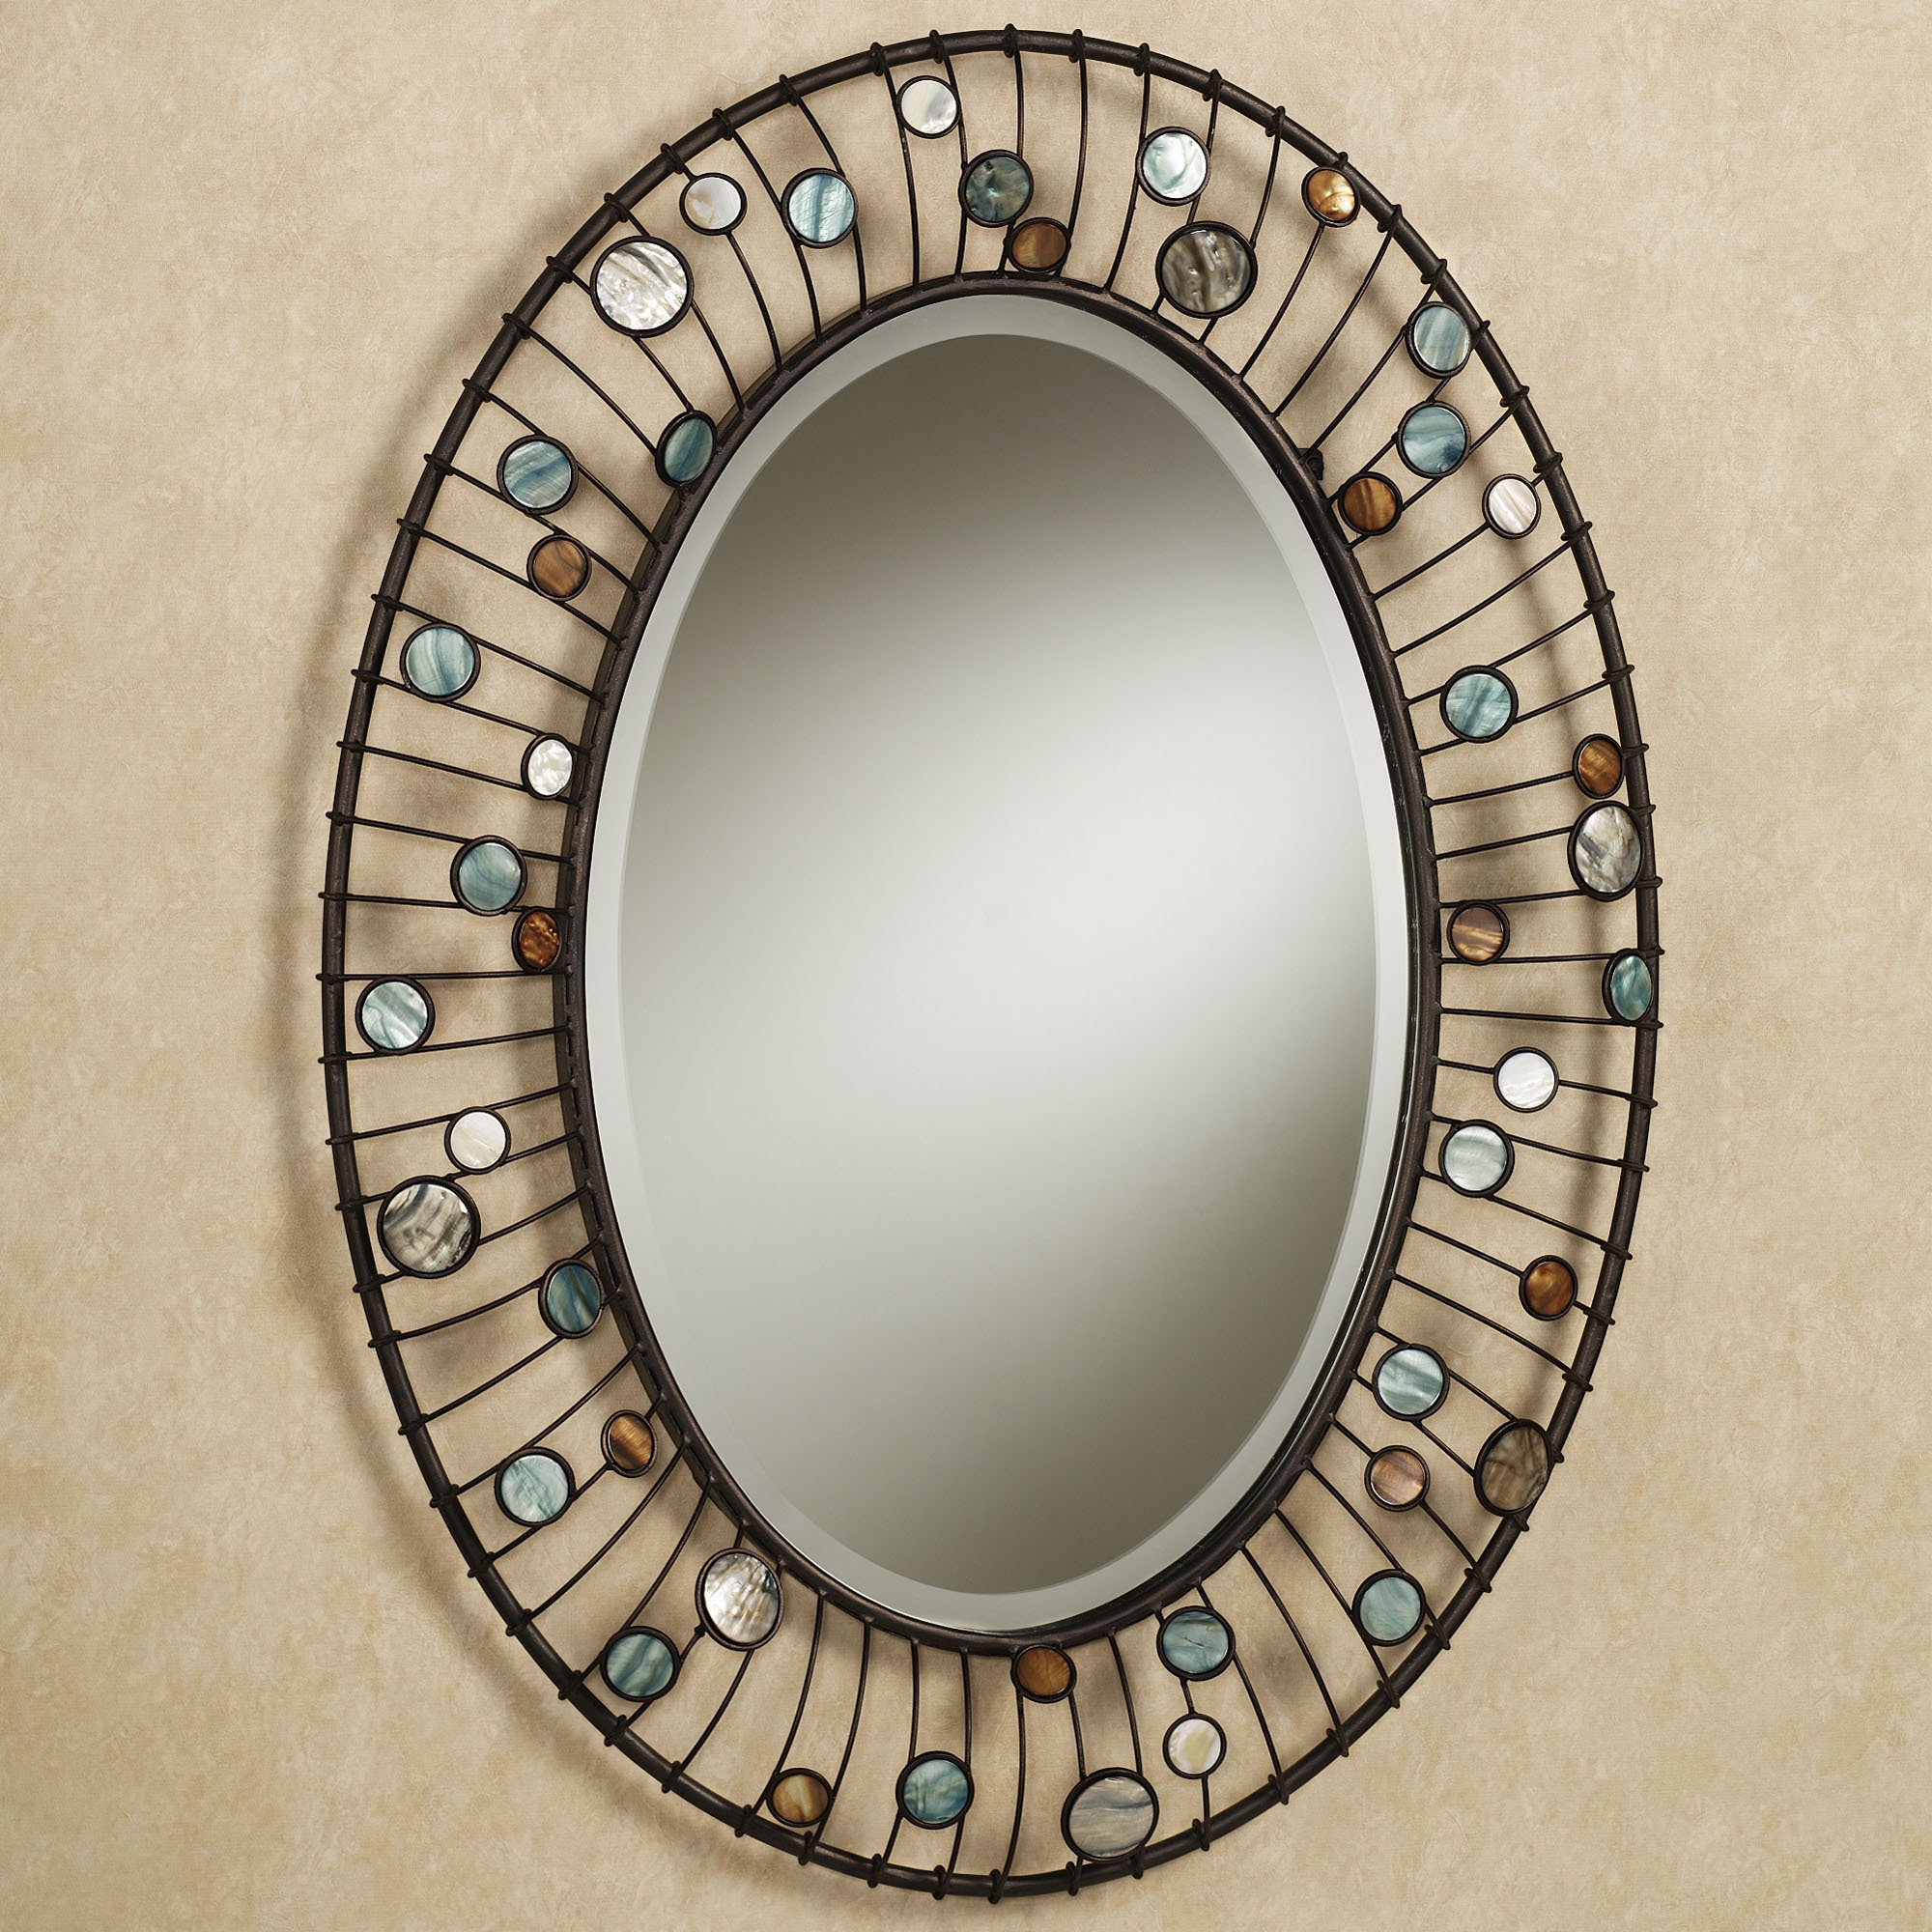 Wonderful Oval Shape Entryway Wall Mirrors With Iron Frames As Throughout Oval Mirrors For Walls (Photo 7 of 15)